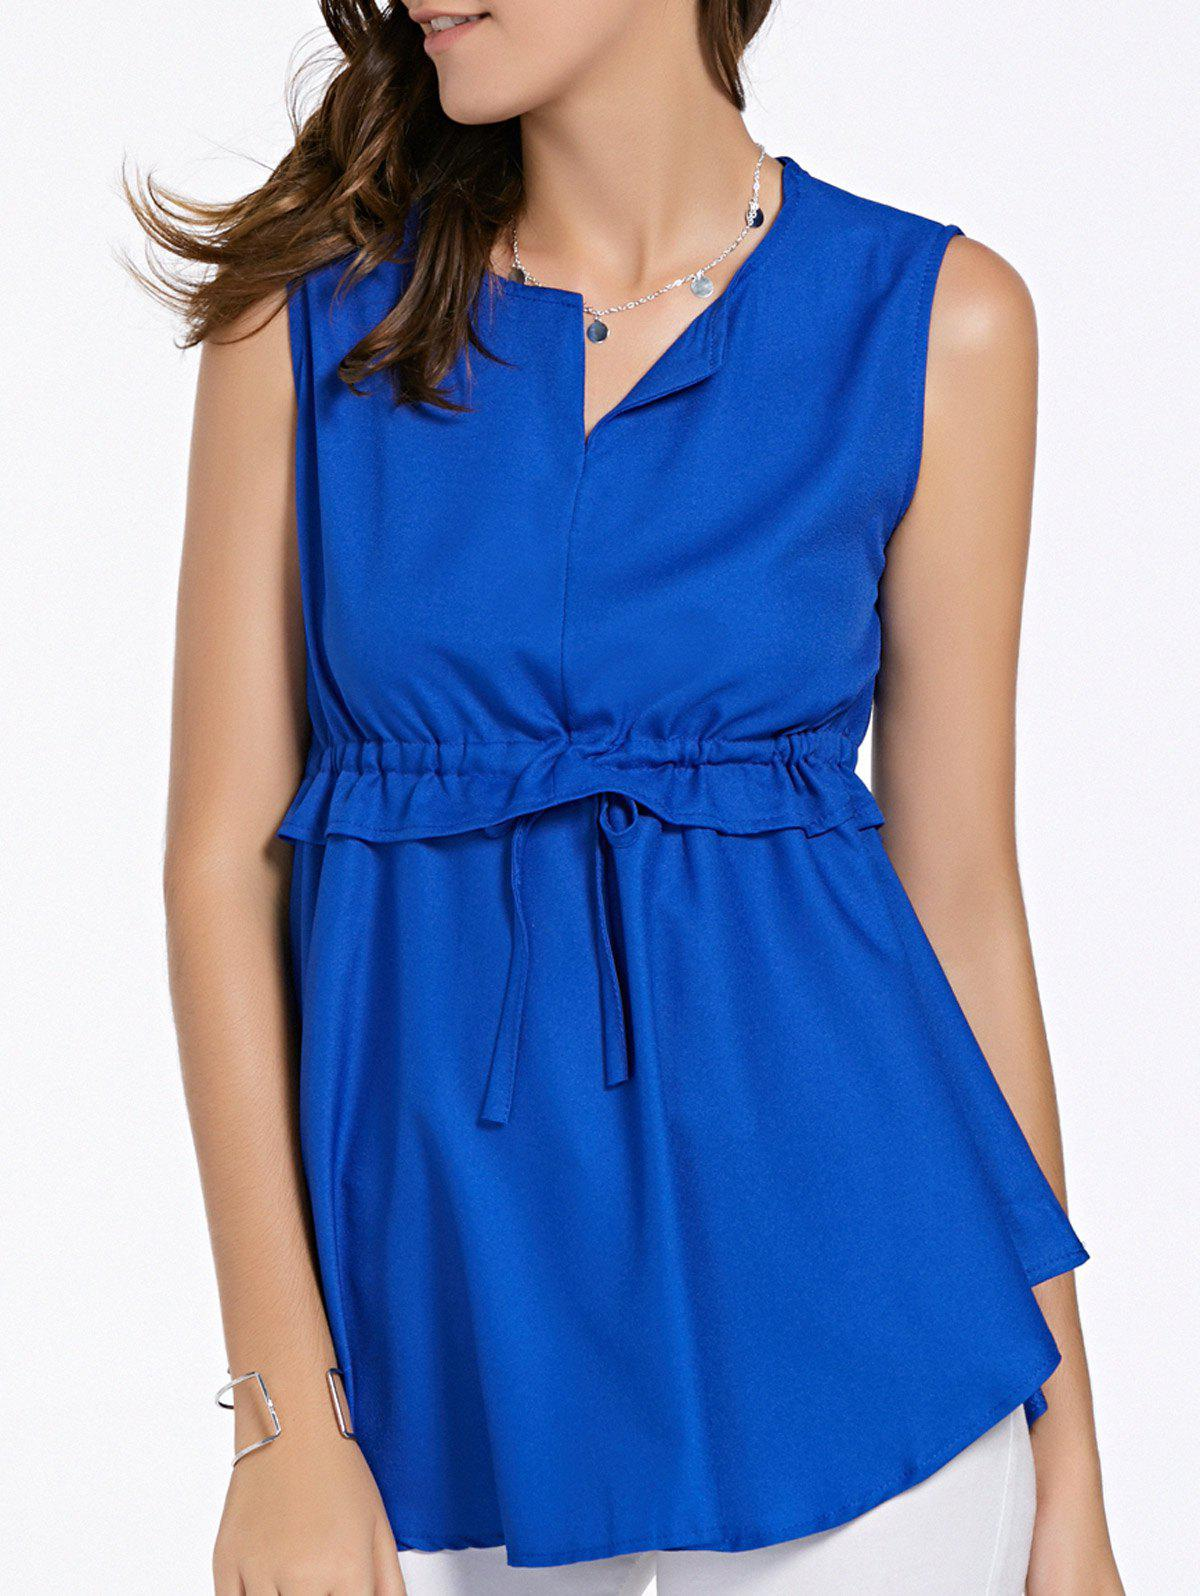 Sweet Women's V-Neck Sleeveless Double-Layered Solid Color Top - BLUE XL